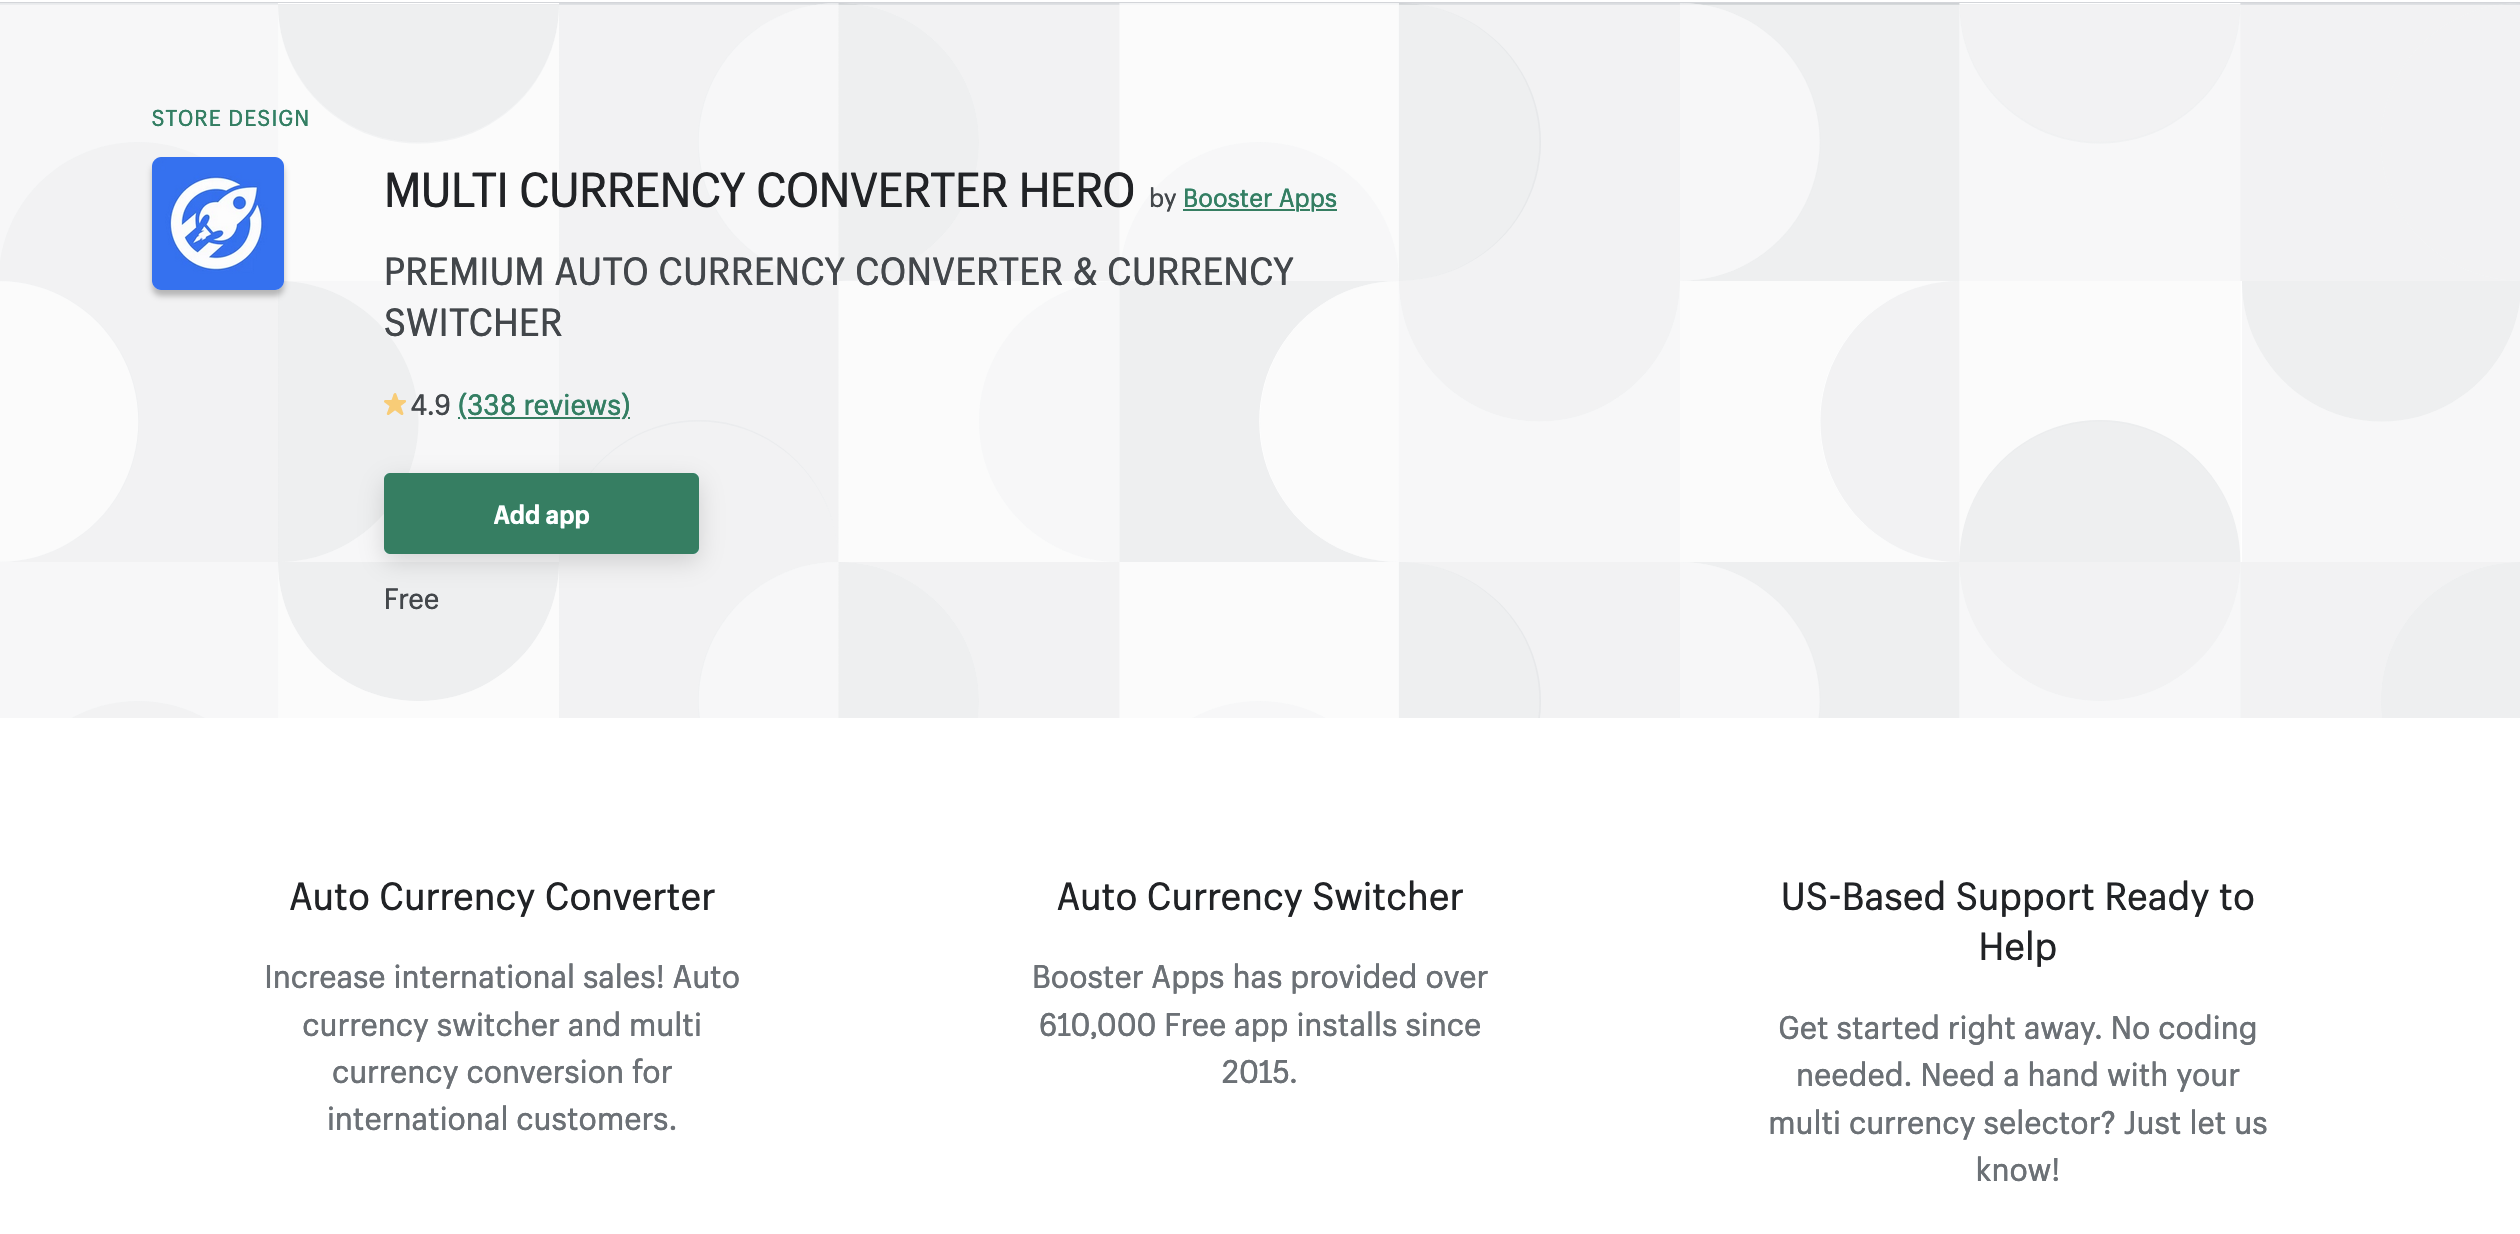 Multi Currency Converter Hero by Booster Apps